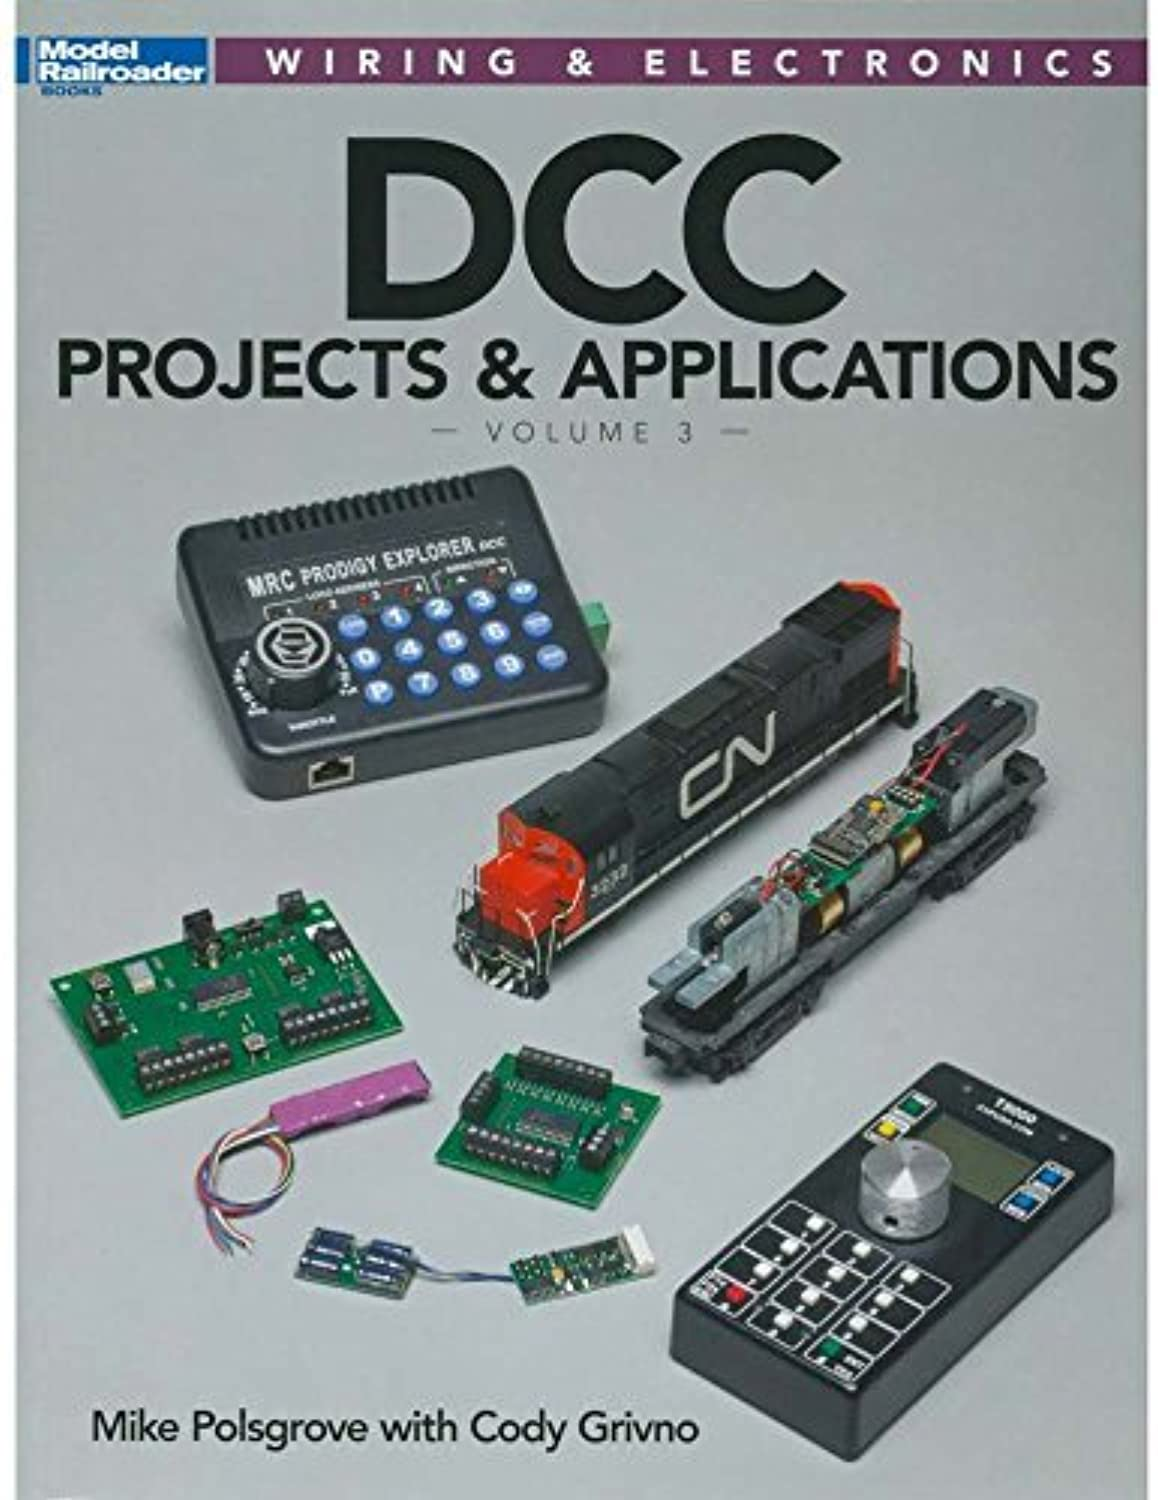 KALMBACH 12486 DCC Projects Applications Volume 3 by Kalmbach